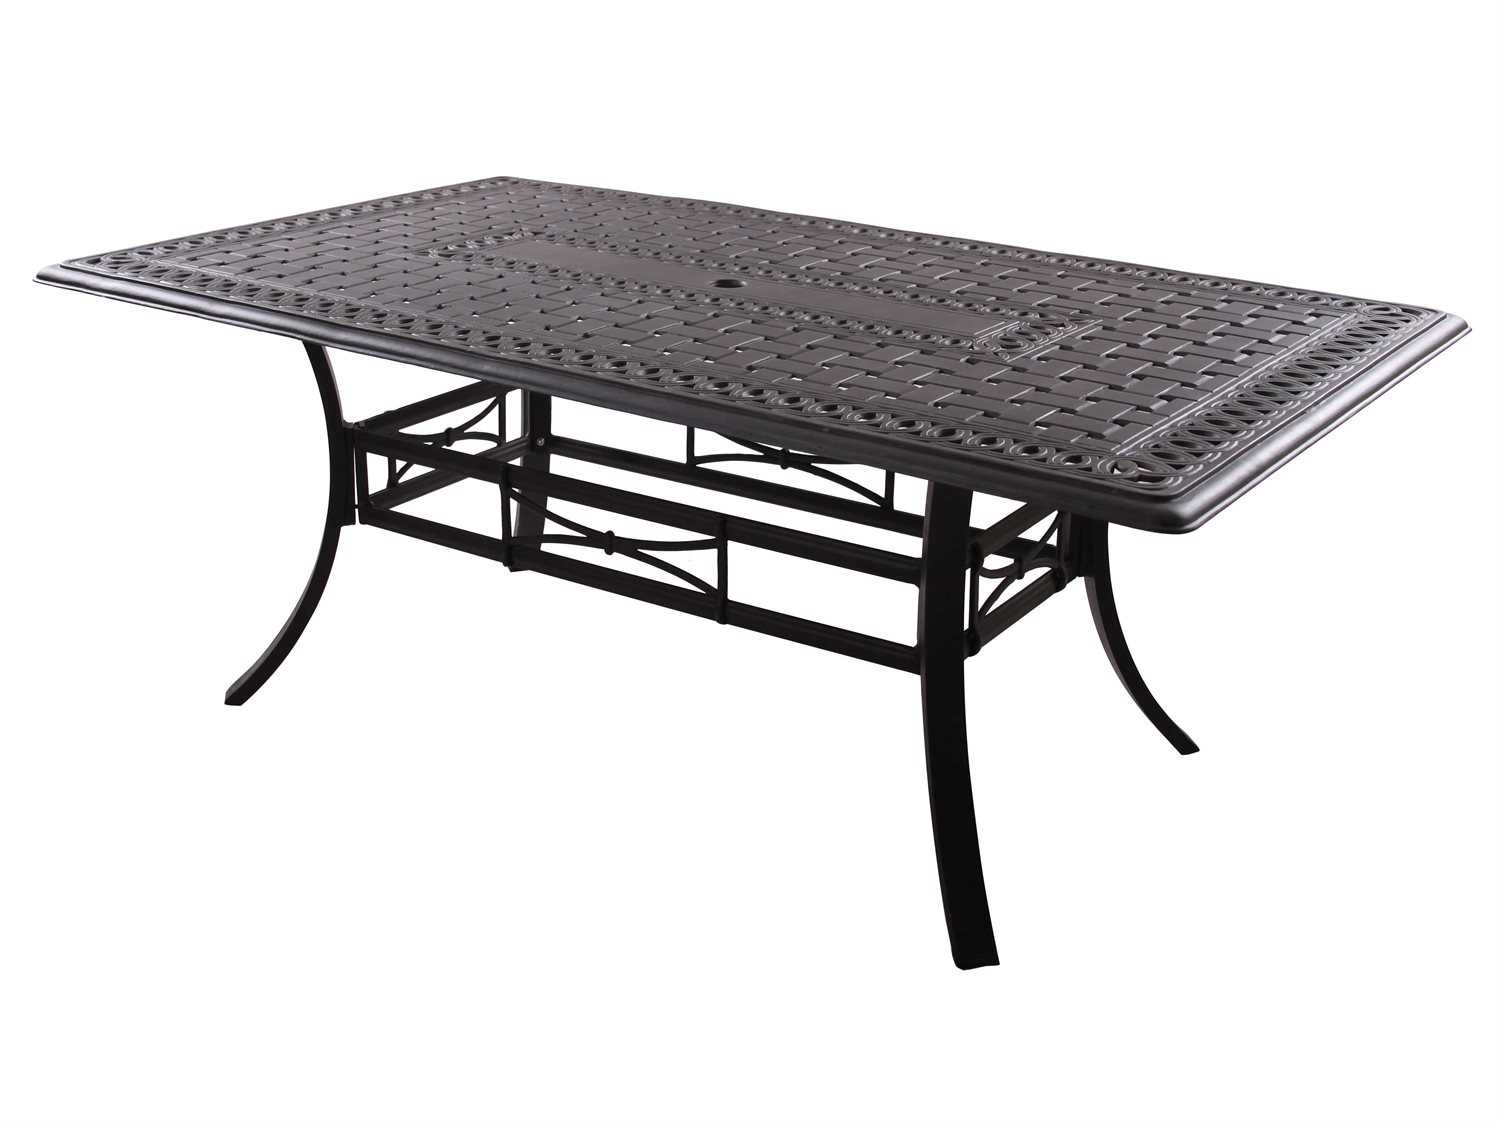 aluminum antique bronze 72 x 42 rectangular dining table 201088 e